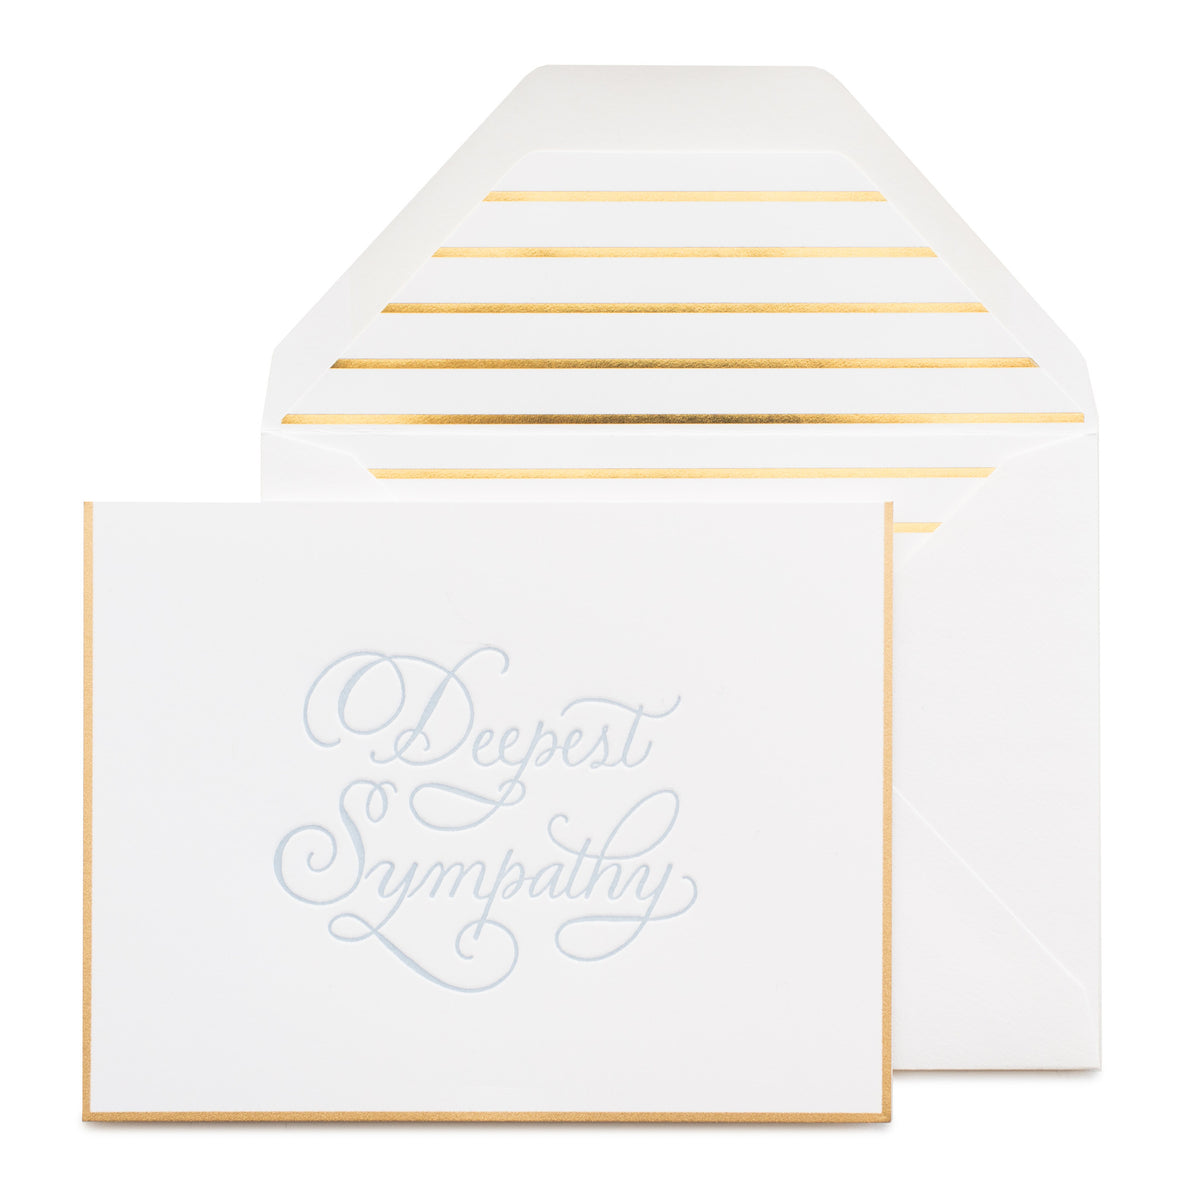 Gold bordered card printed with deepest sympathy in blue ink with a gold striped envelope